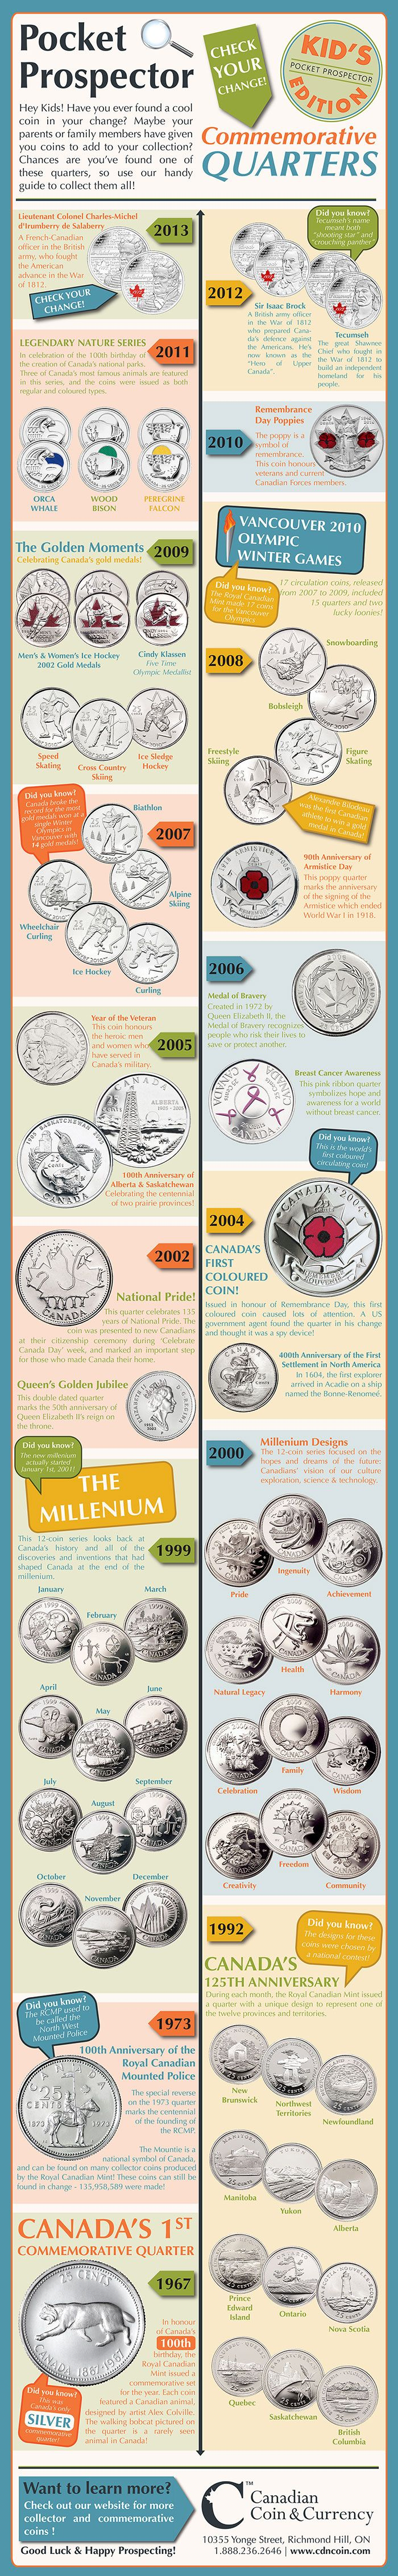 Canadian Coins - Commemorative Quarters from CdnCoin.com #infographic #coins #silver